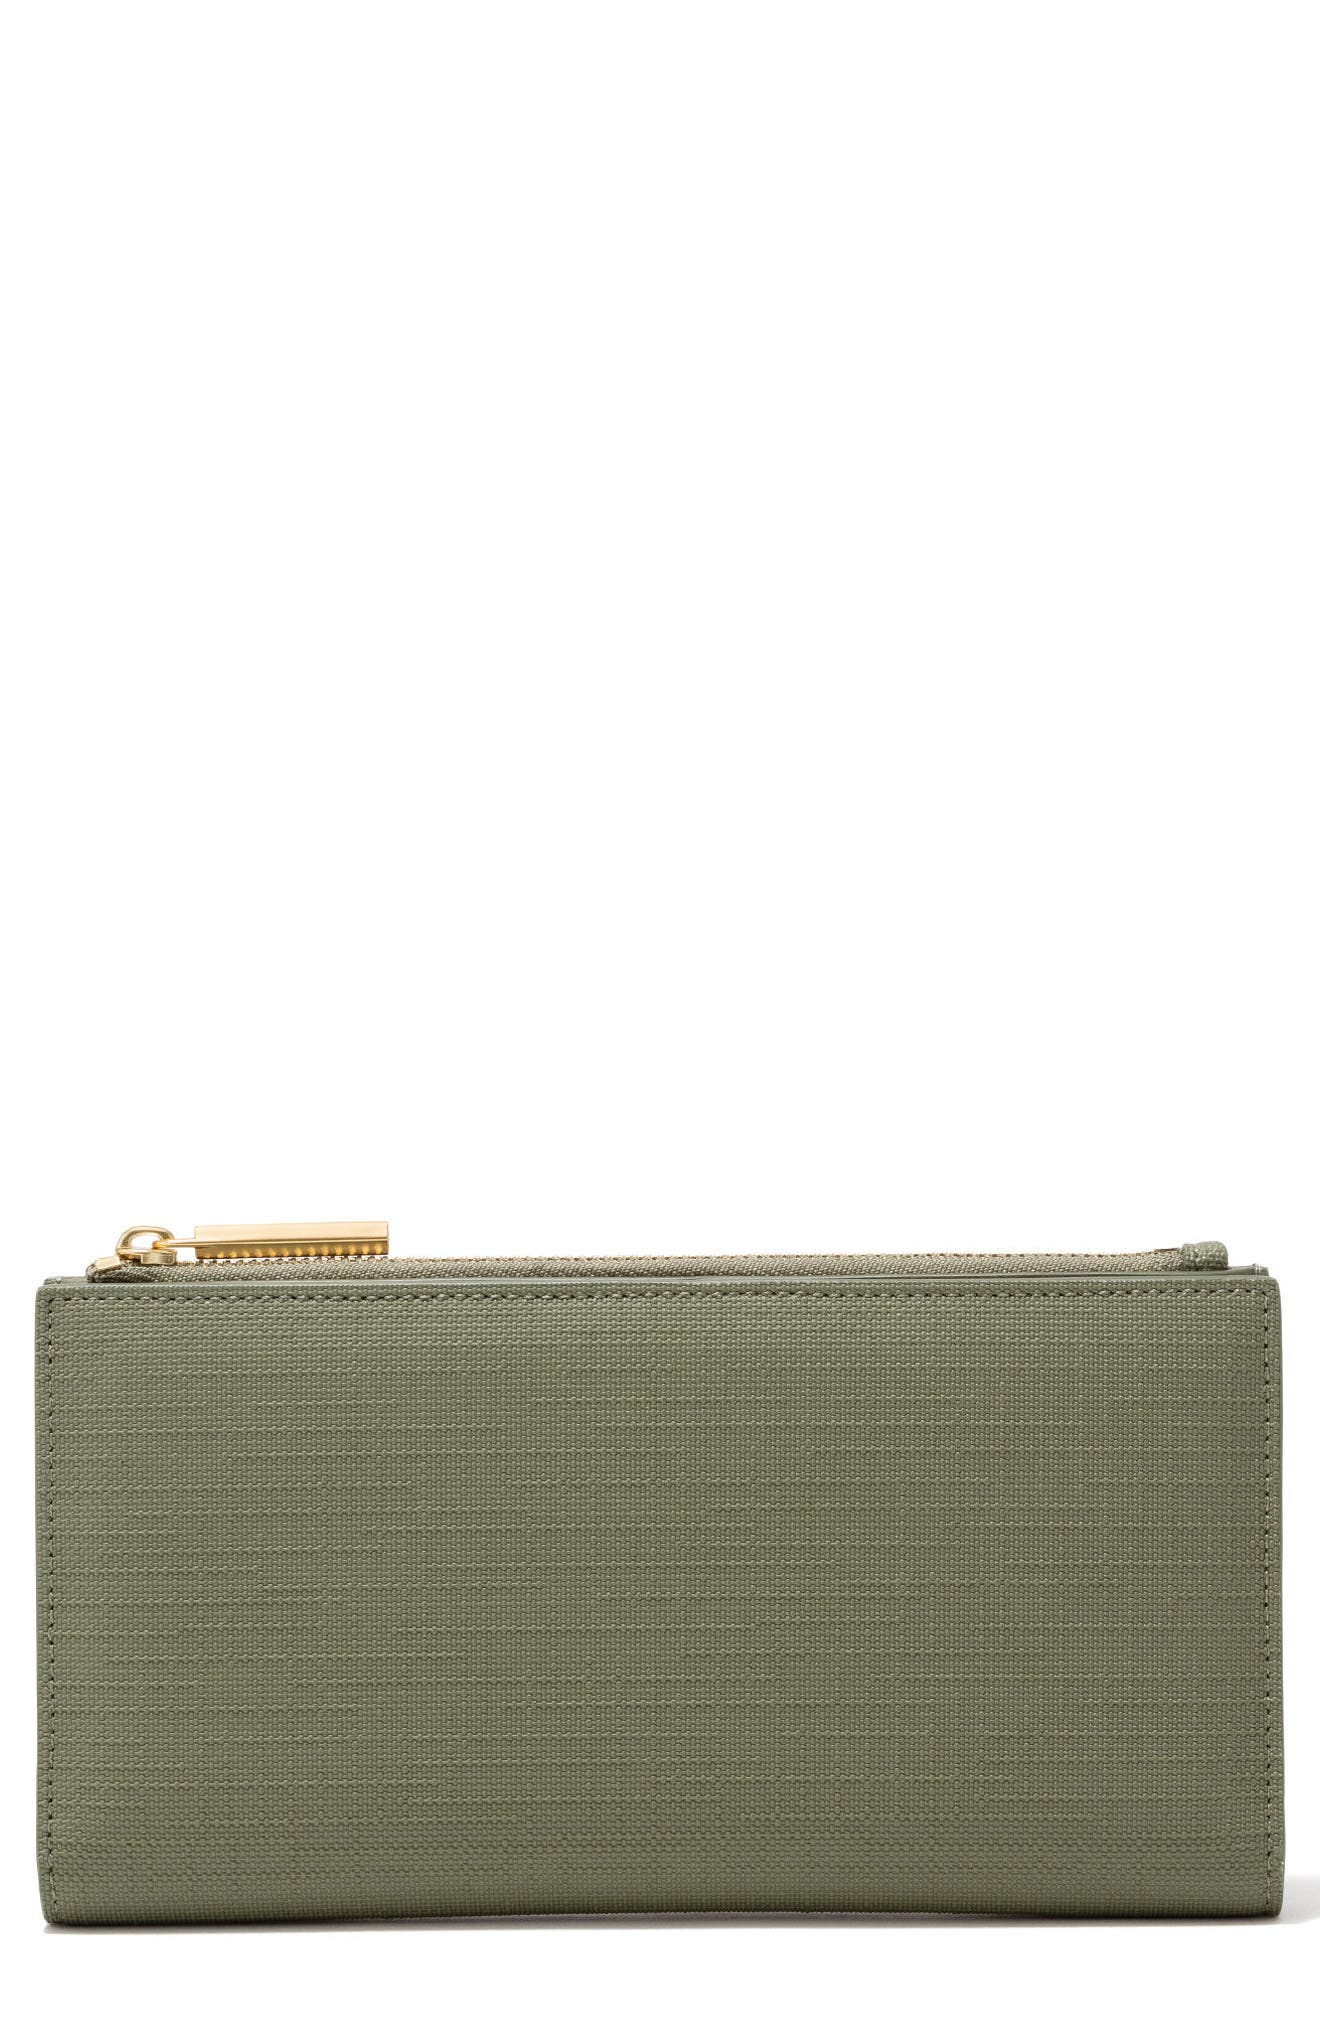 VIDA Leather Statement Clutch - Sweet Life 3 by VIDA